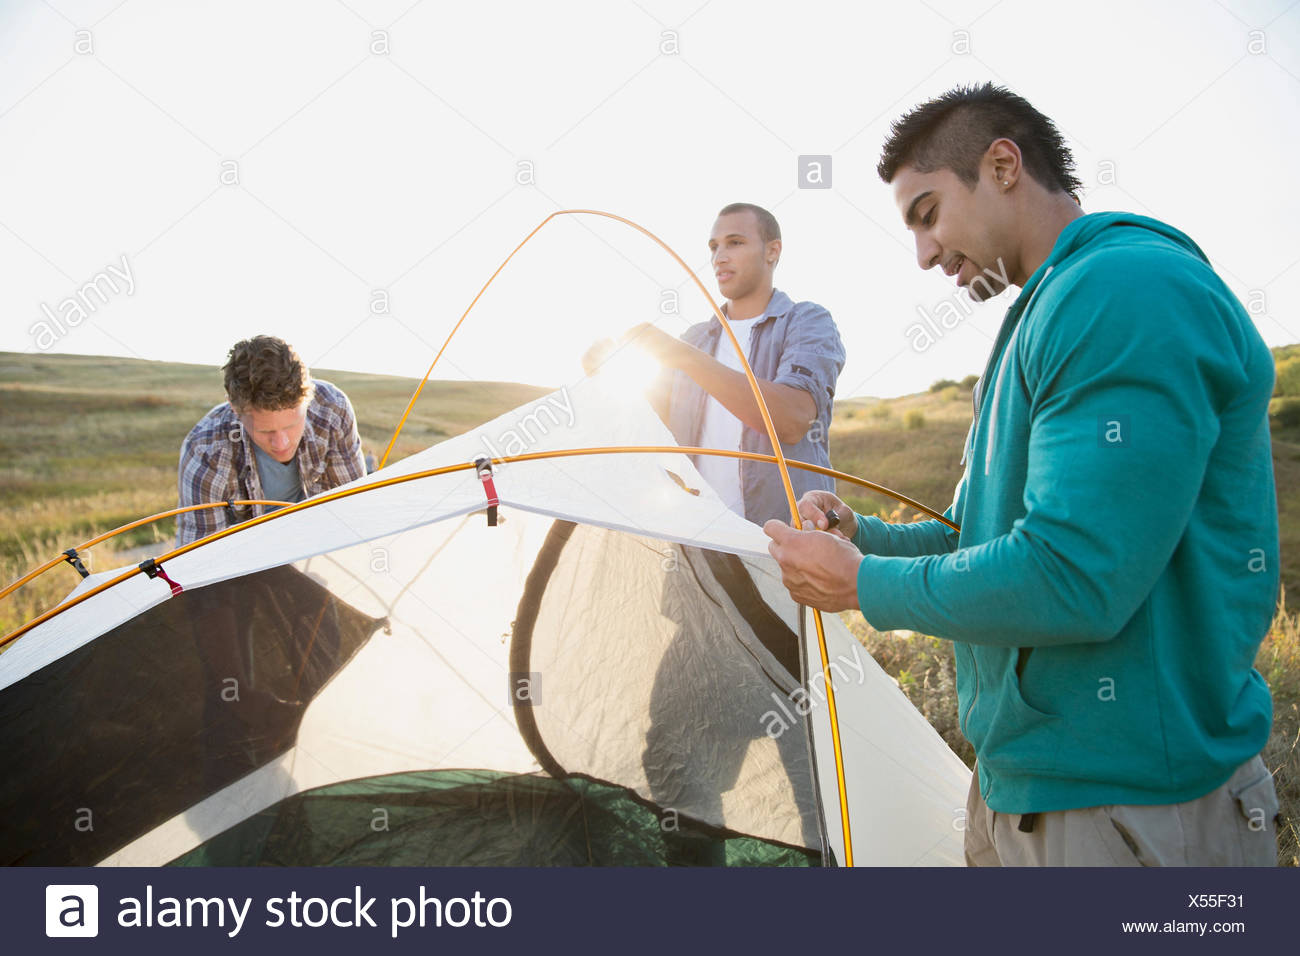 Friends inserting poles into tent for camping. - Stock Image